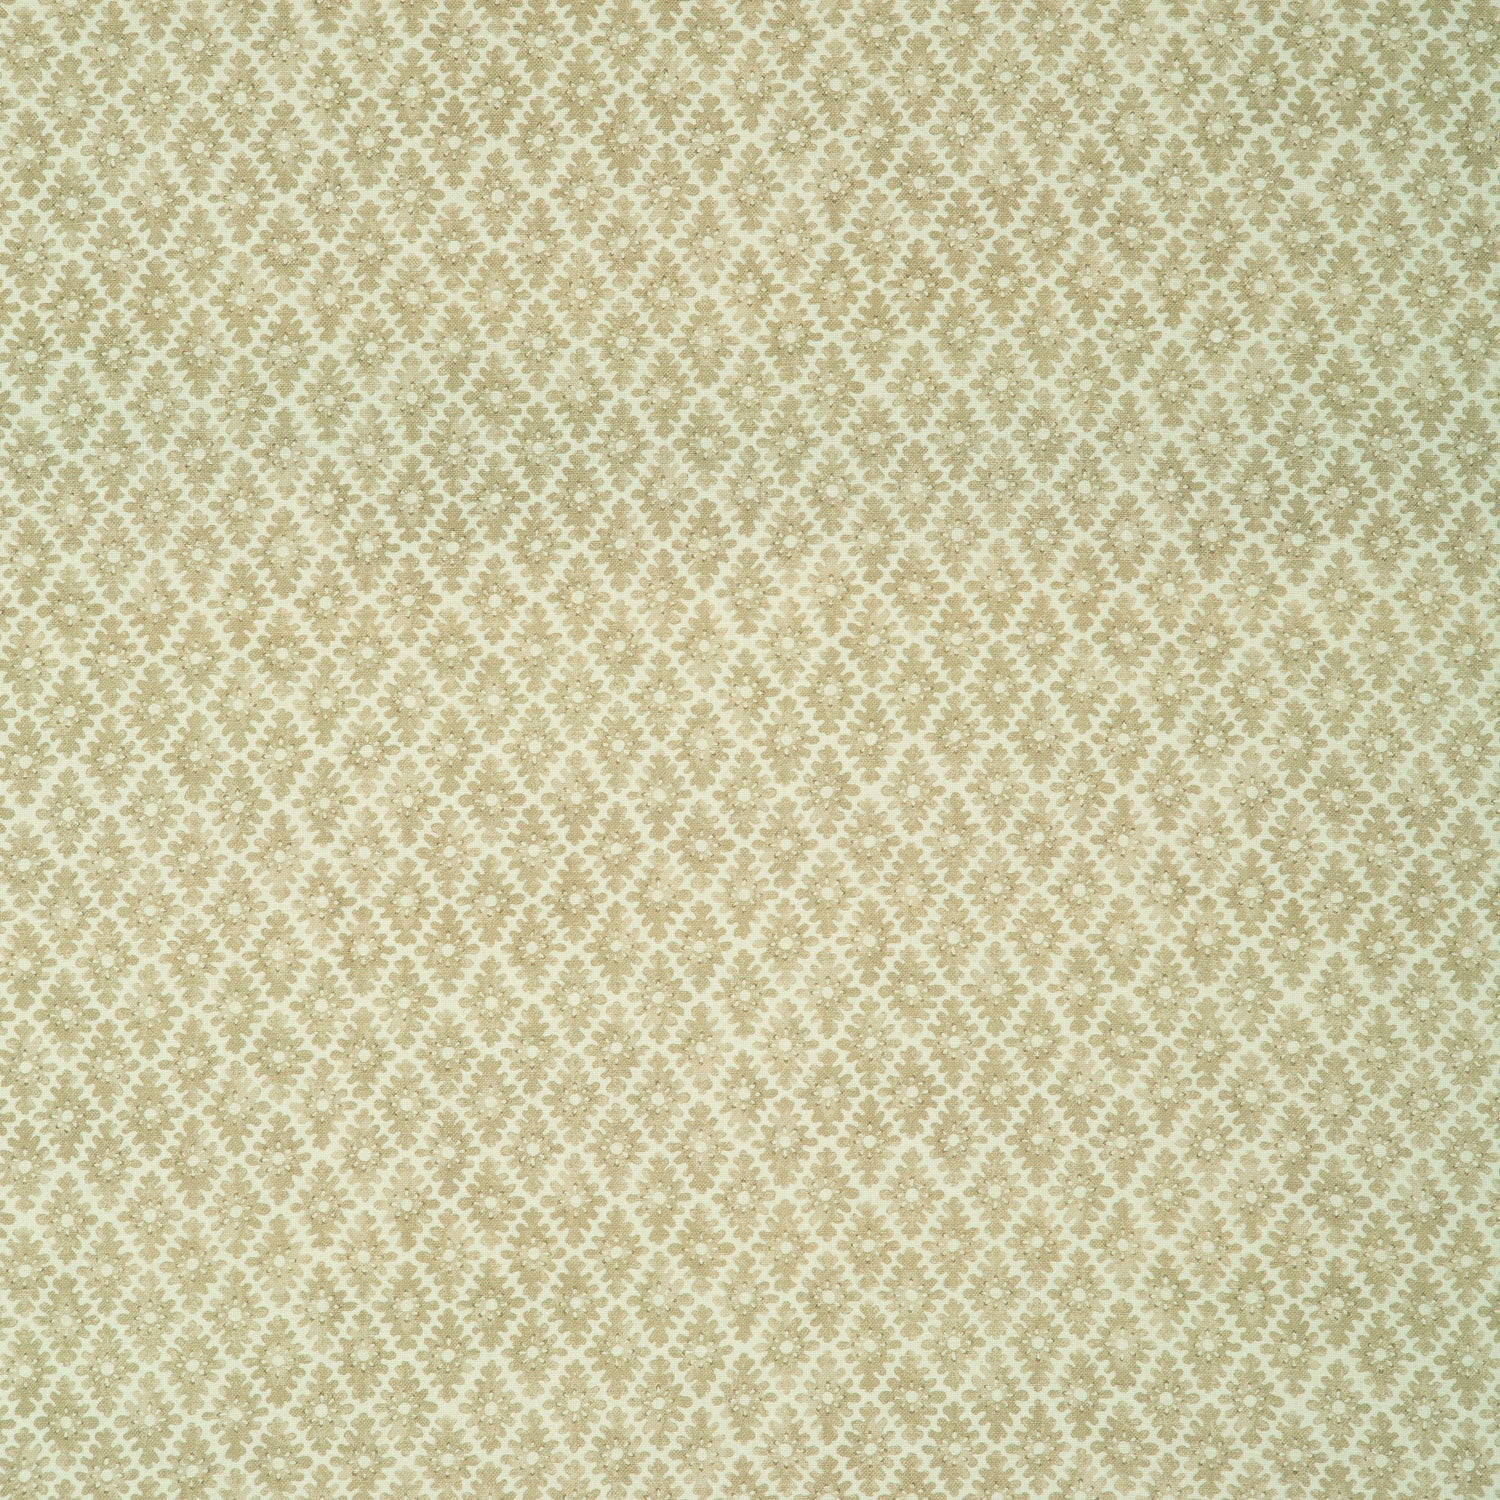 Fabric sample of a light gold and neutral printed linen fabric for curtains and upholstery